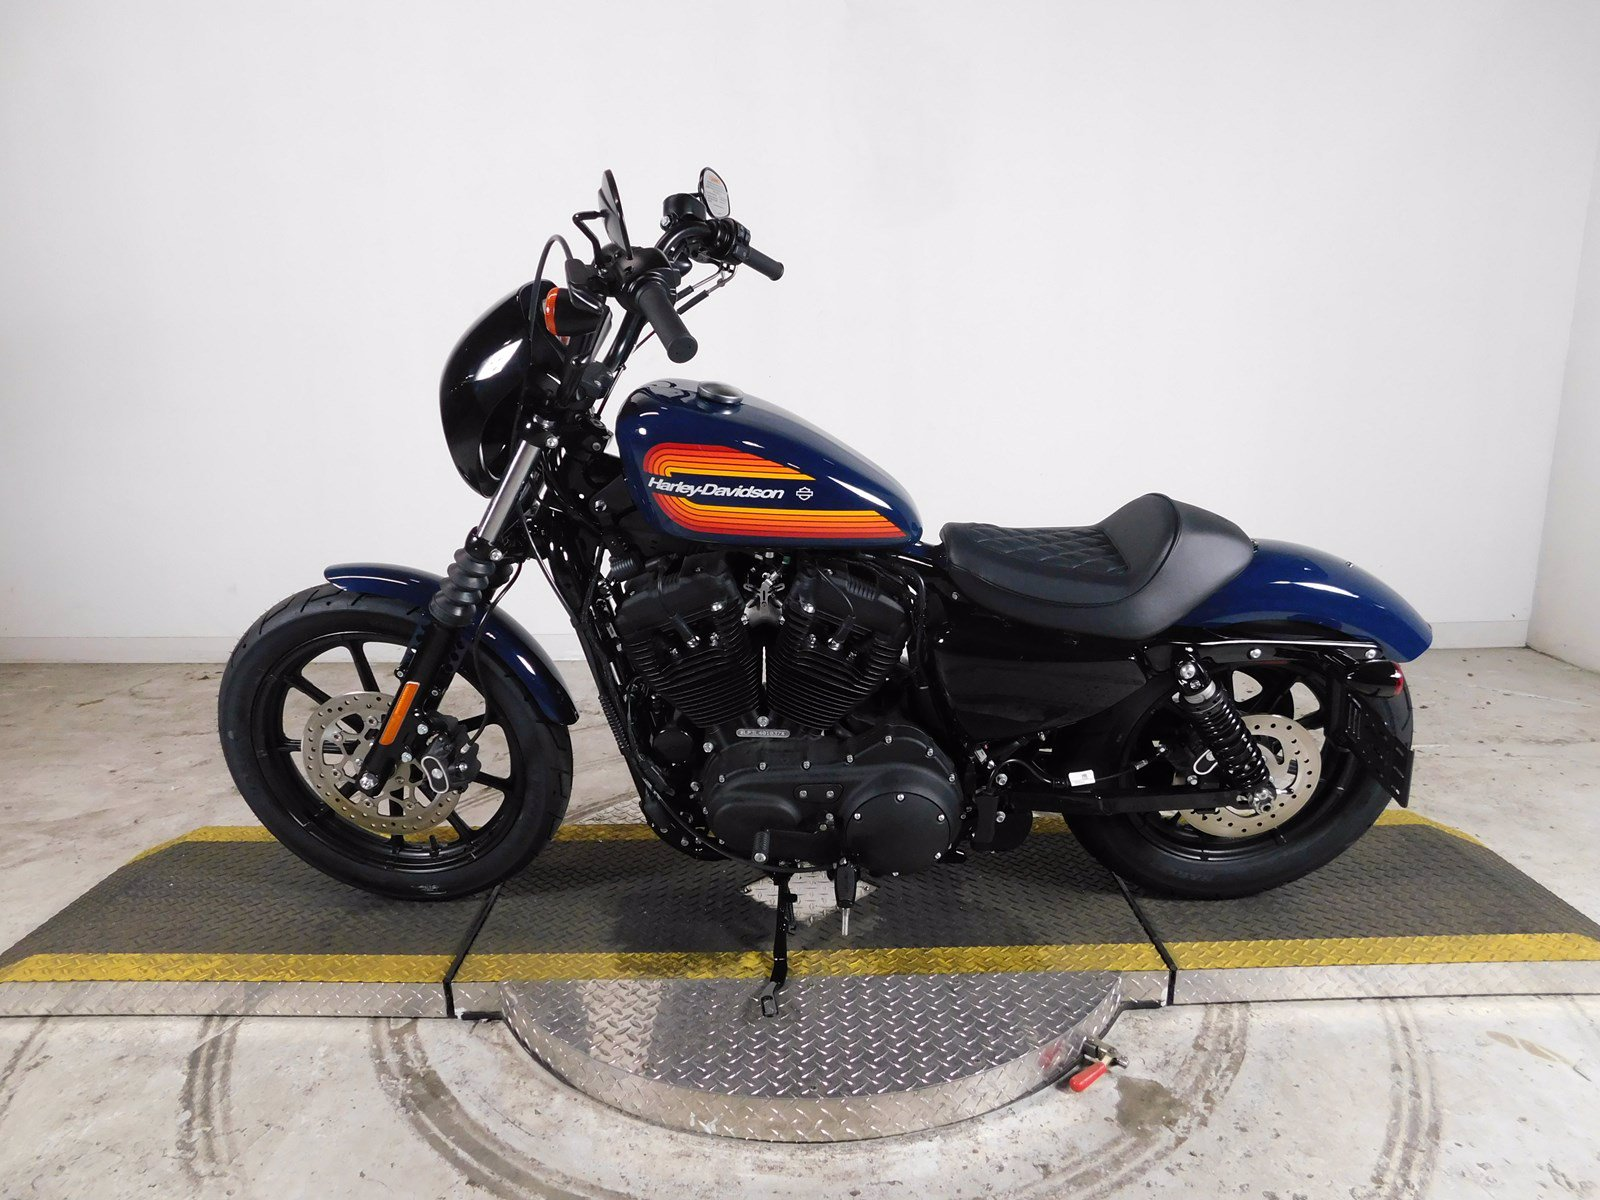 New 2020 Harley-Davidson Sportster Iron 1200 XL1200NS ...